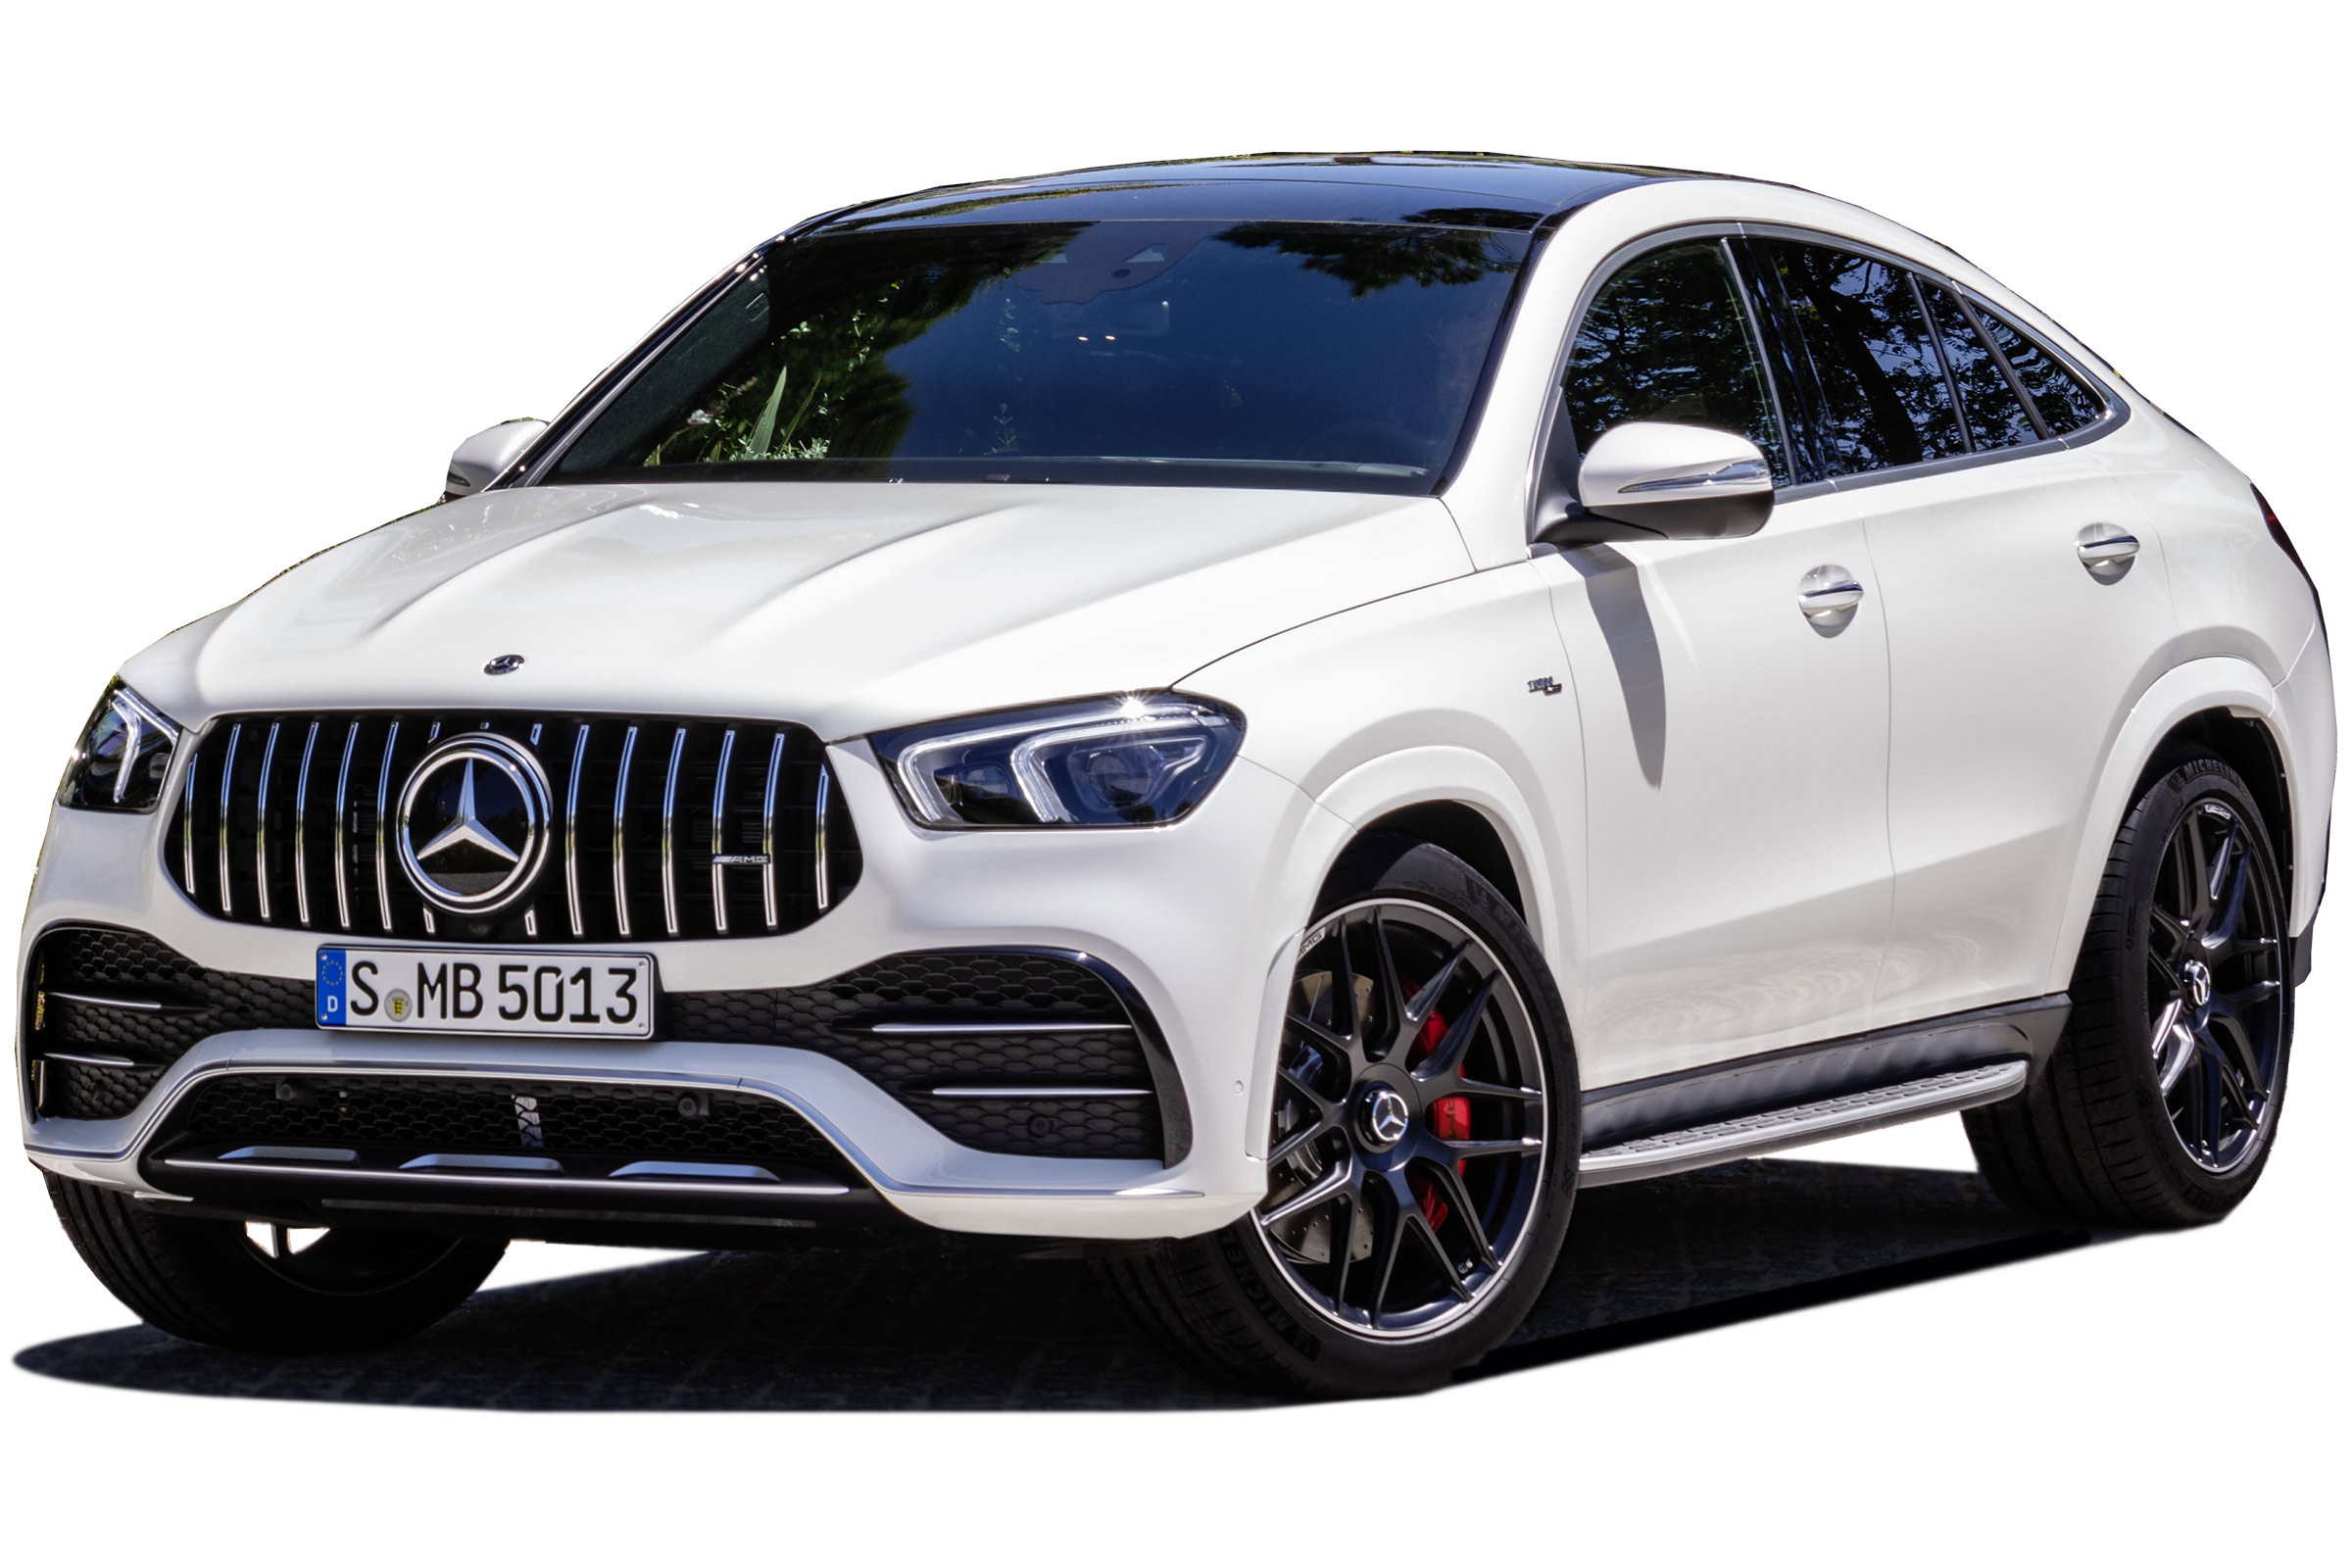 Mercedes Gle Coupe Suv 2020 Review Carbuyer